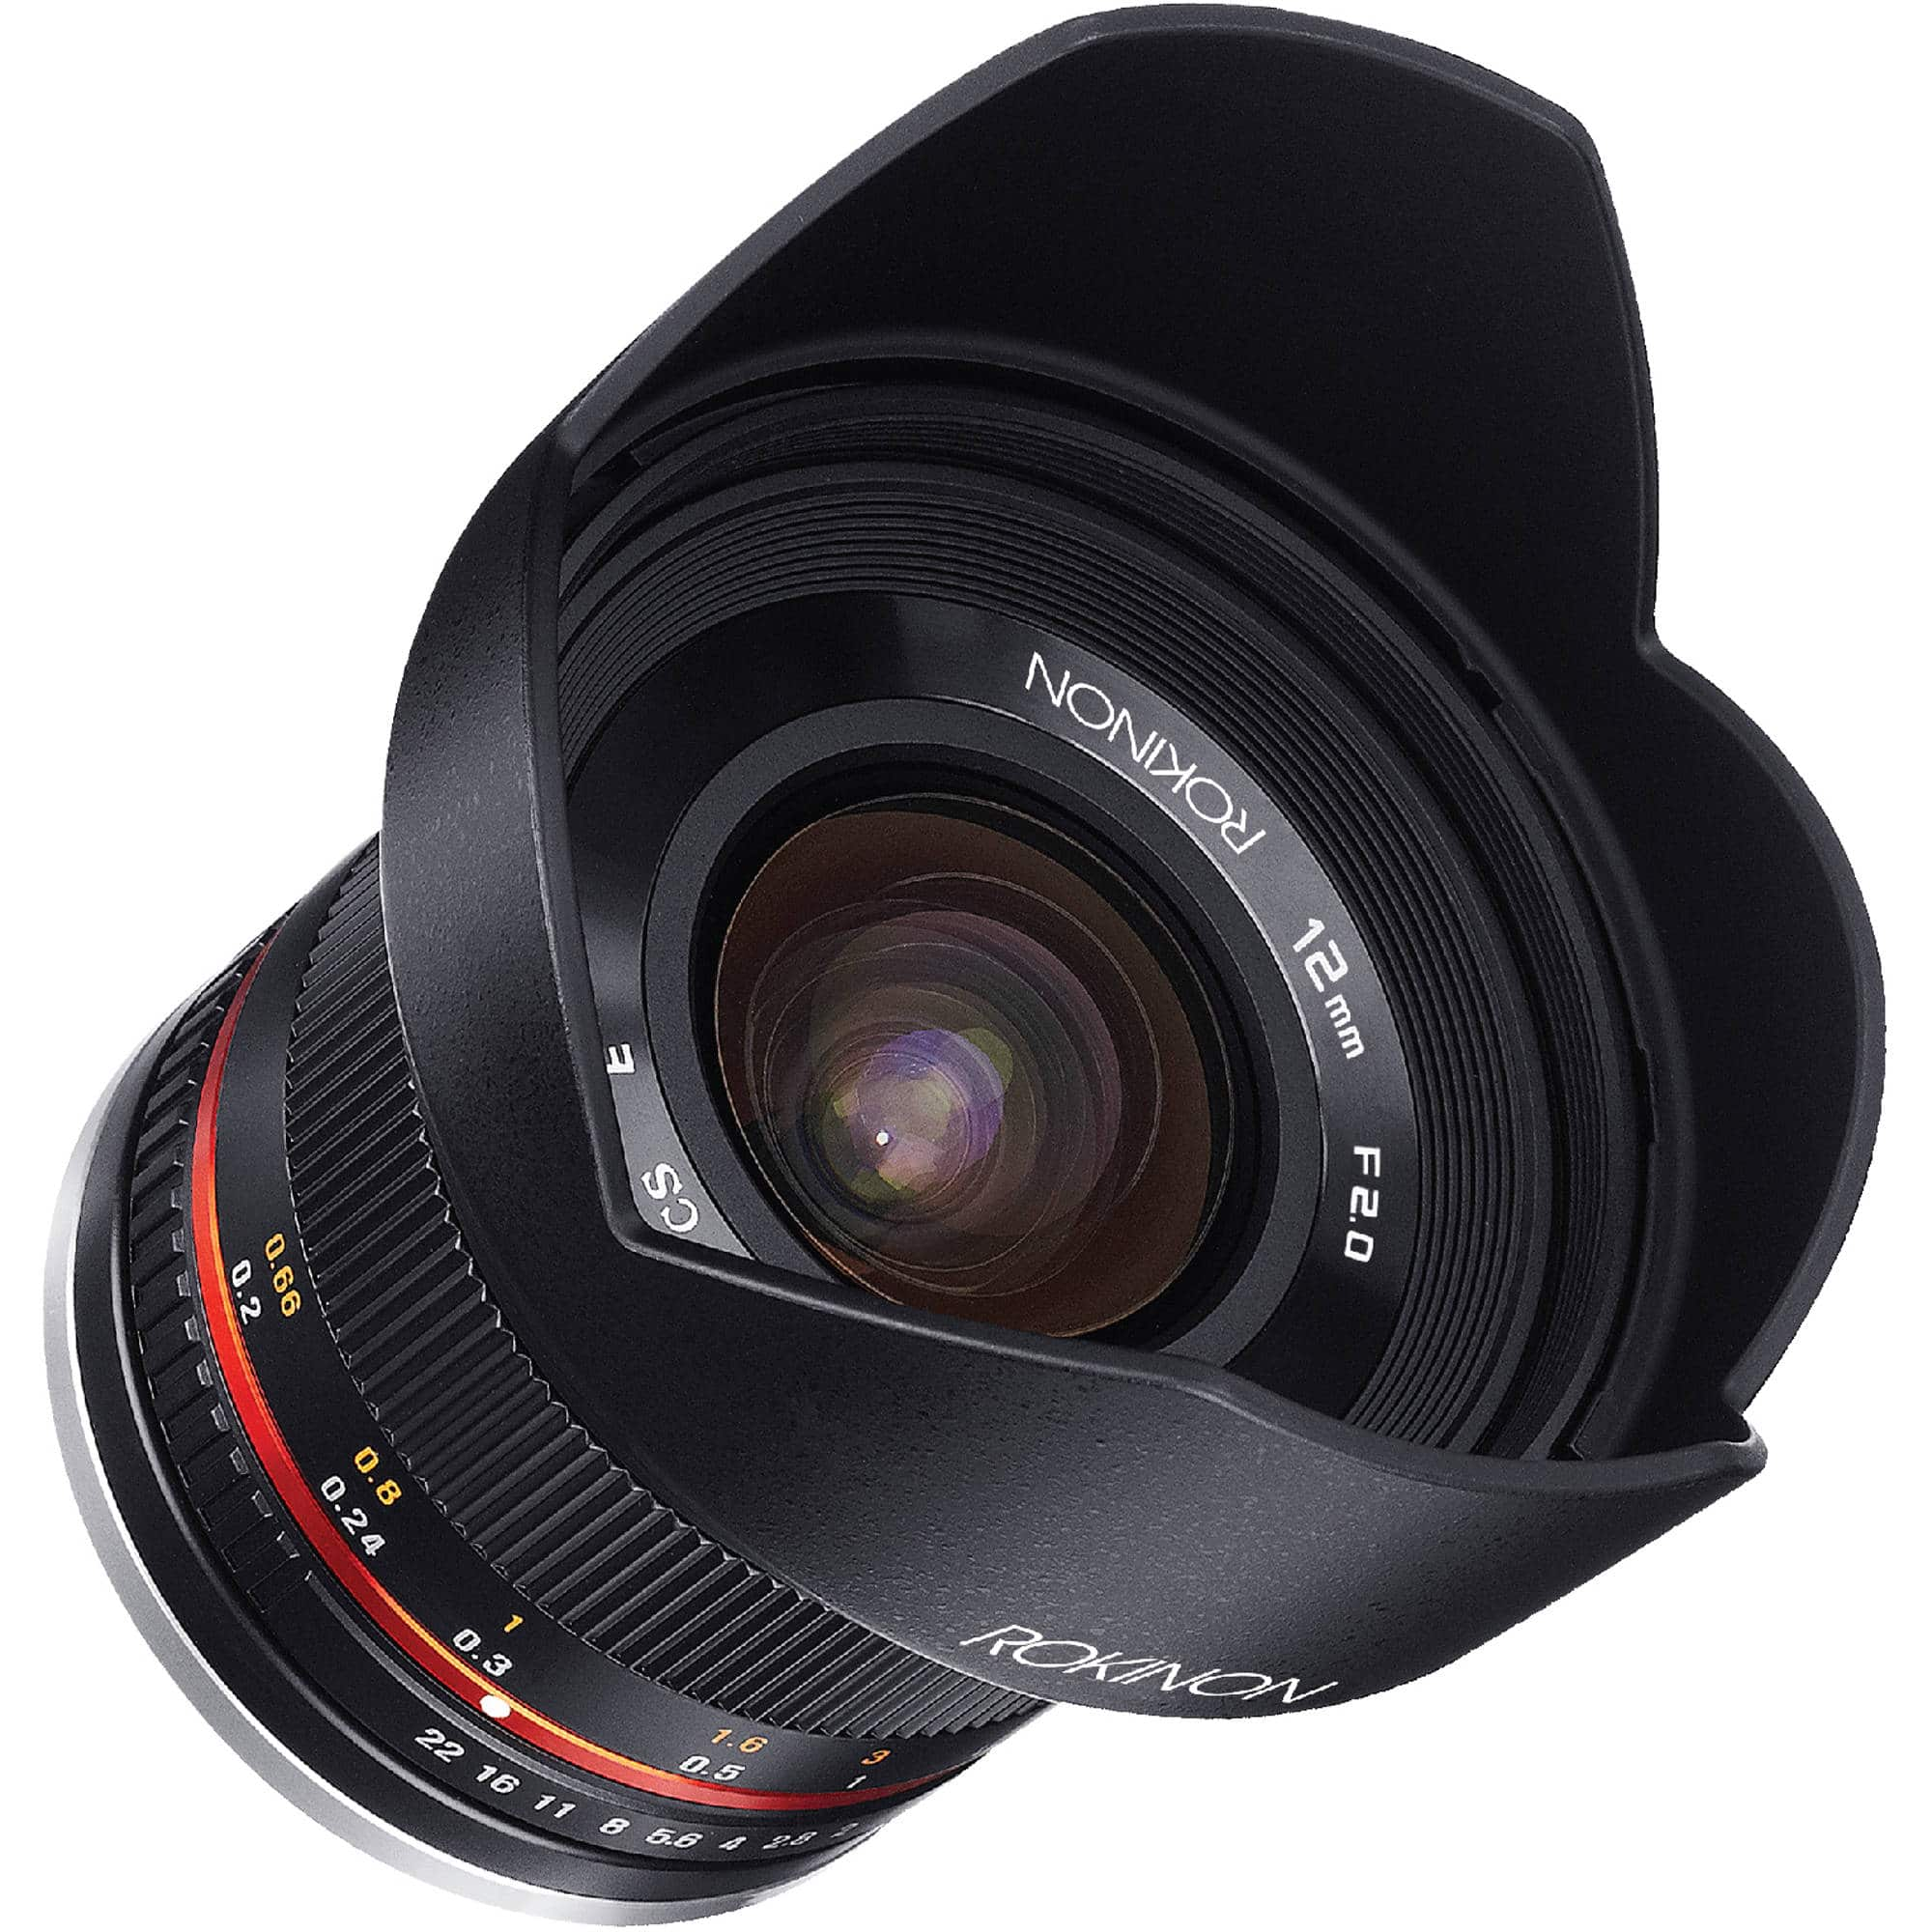 Rokinon 12mm F2.0 NCS CS Ultra Wide Angle Lens (various mounts) $298+ Free Shipping